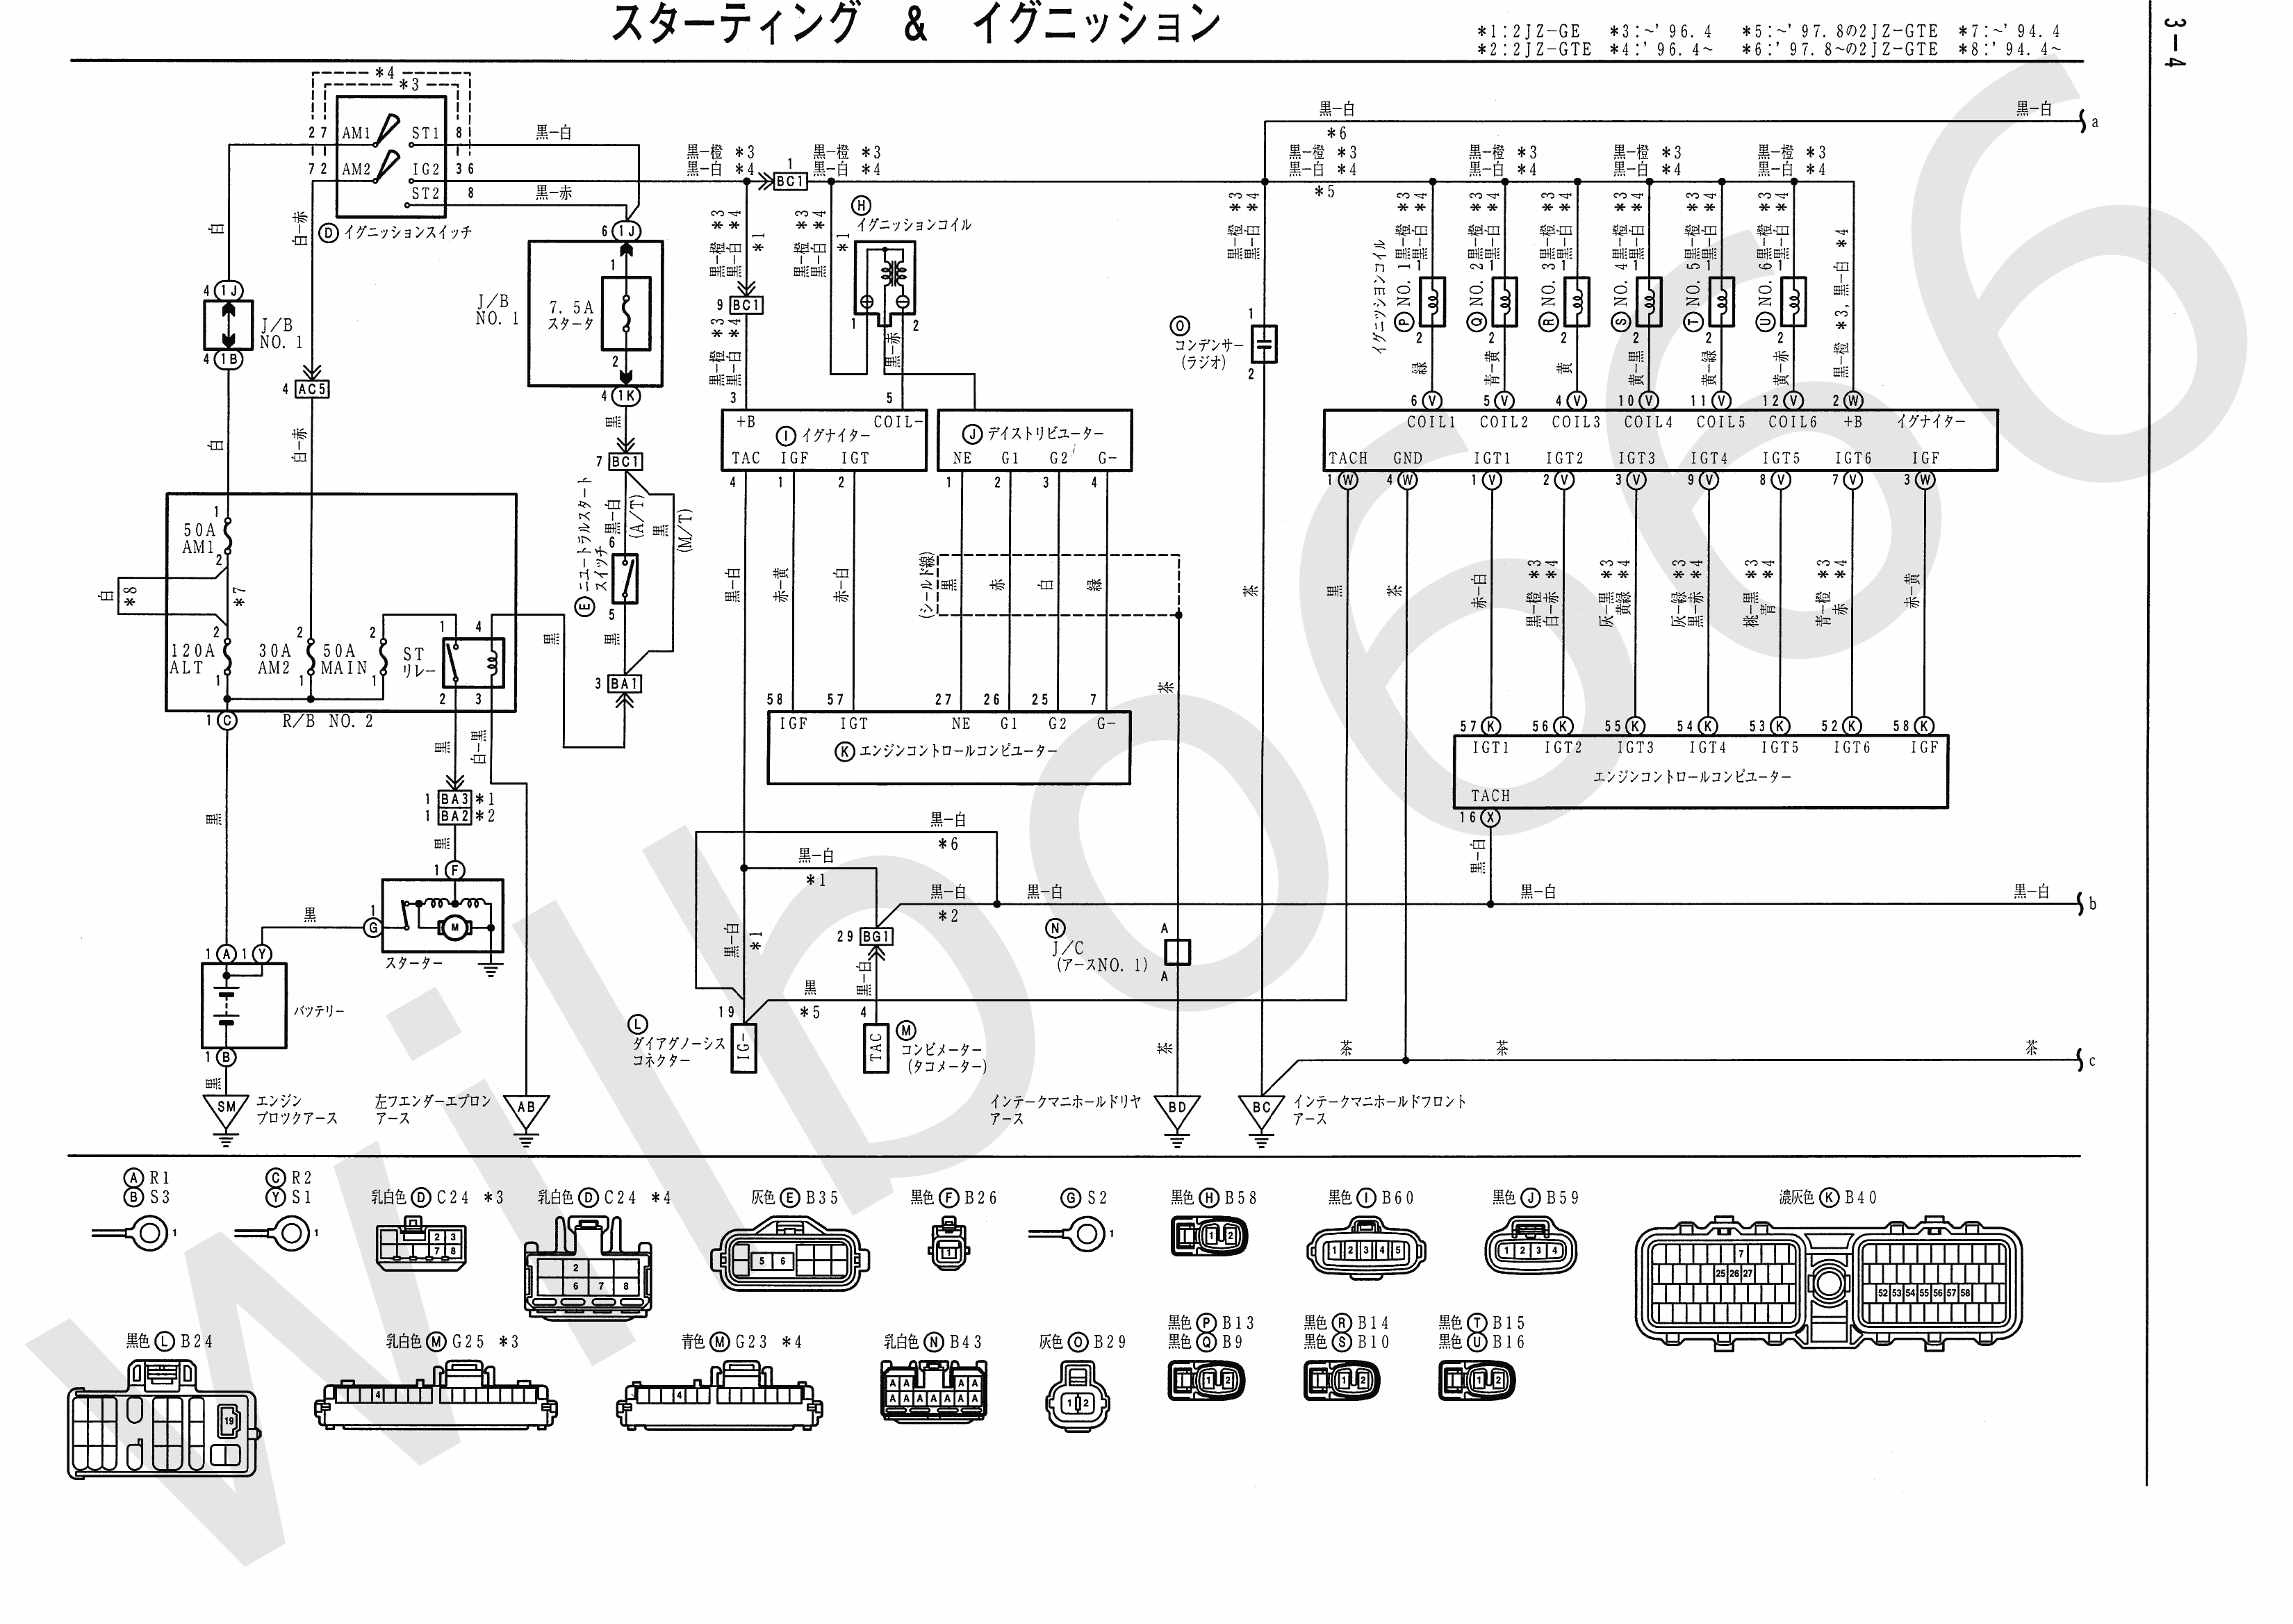 JZA80 Electrical Wiring Diagram 6742505 3 4 wilbo666 2jz ge jza80 supra engine wiring 2jzgte wiring harness at gsmx.co